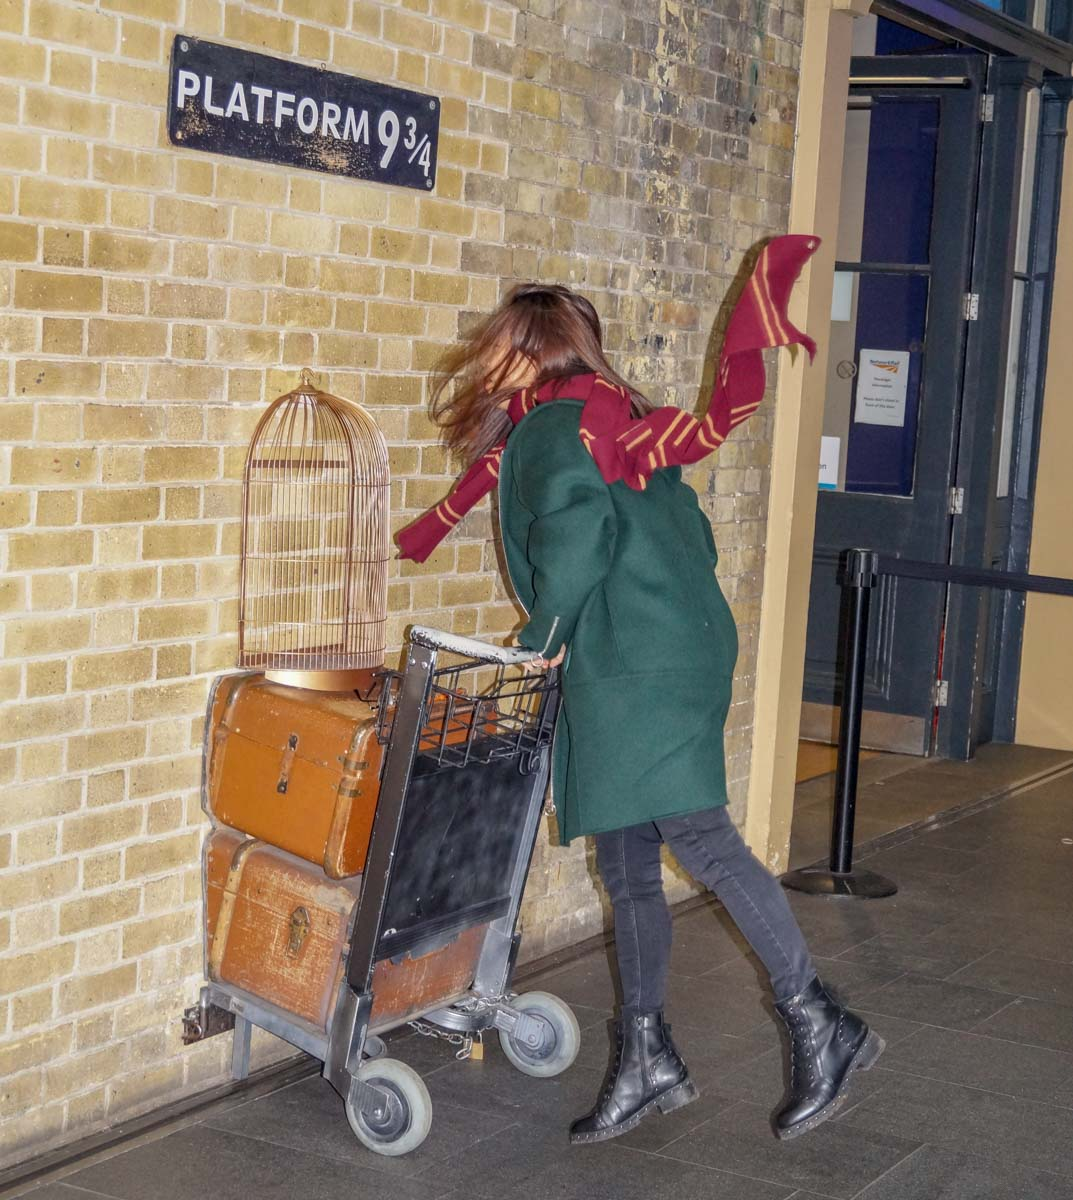 Harry-potter-2 King's Cross Station – Entry to the Hogwarts Express